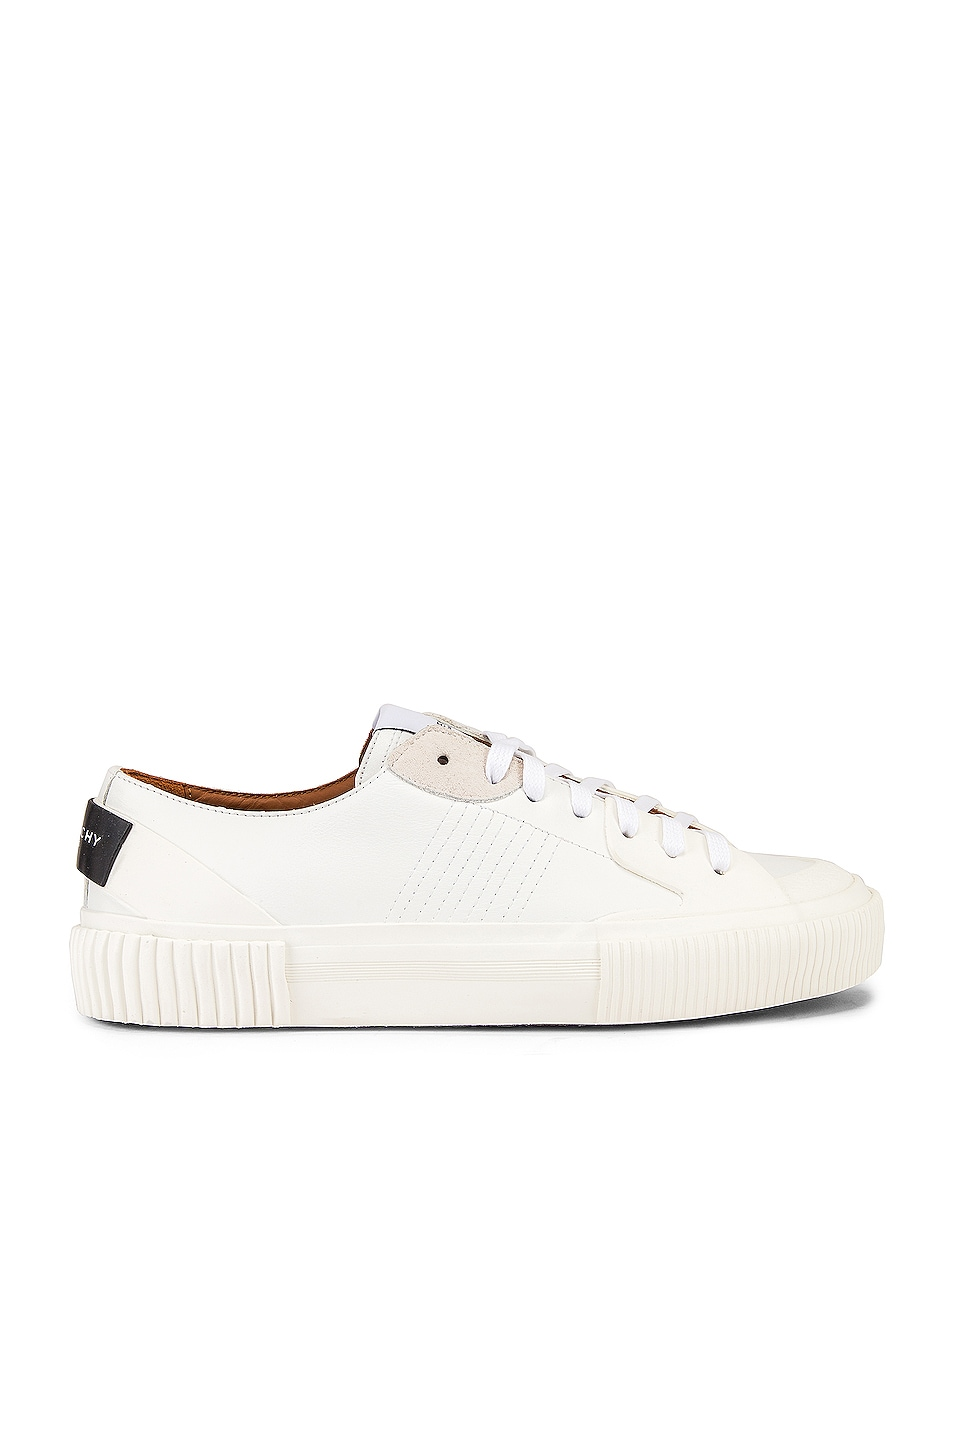 Image 1 of Givenchy Tennis Light Low Sneakers in White